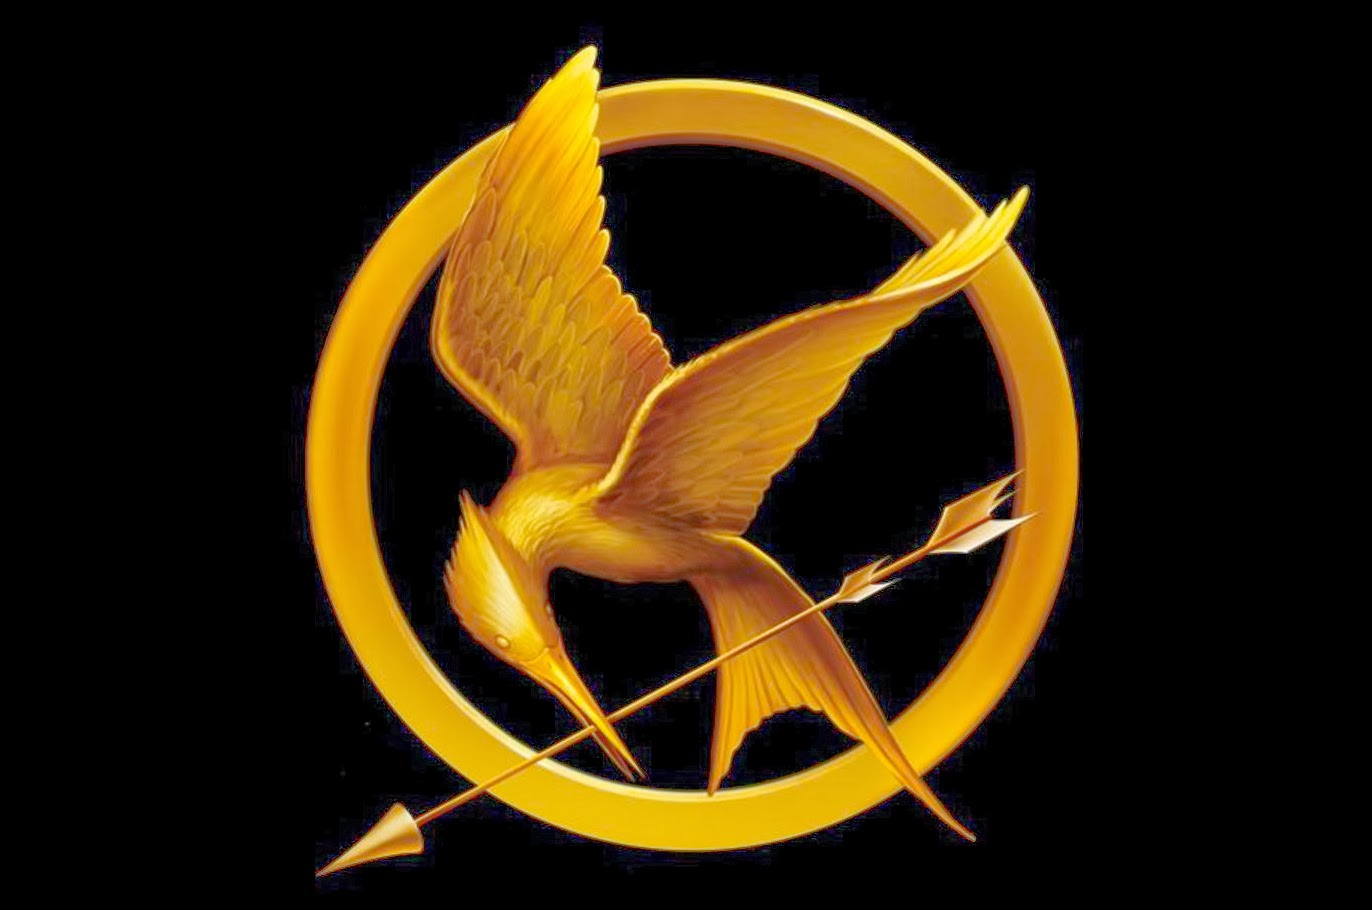 Pin Mockingjay-pin-on-fire-with-white-background-image ...